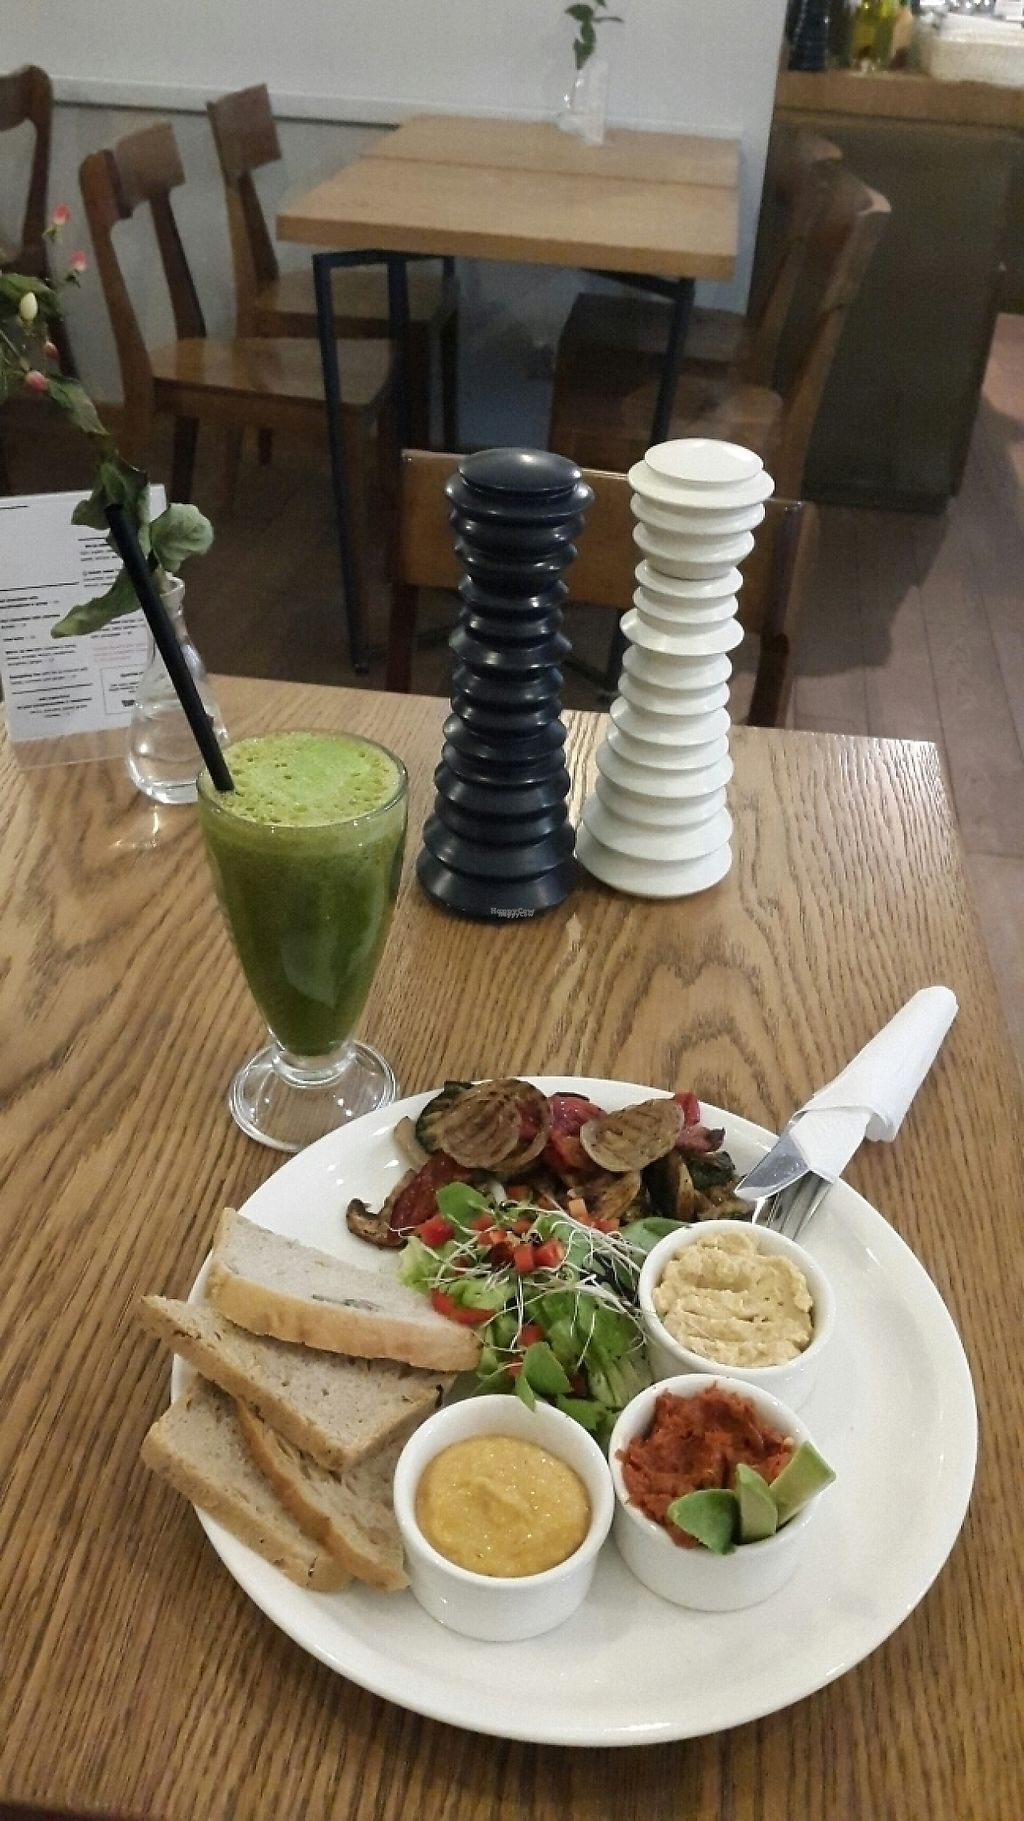 "Photo of Mo-Ja Cafe  by <a href=""/members/profile/Cocoon_me"">Cocoon_me</a> <br/>Vege-vege and energy smoothie <br/> March 13, 2017  - <a href='/contact/abuse/image/75826/235826'>Report</a>"